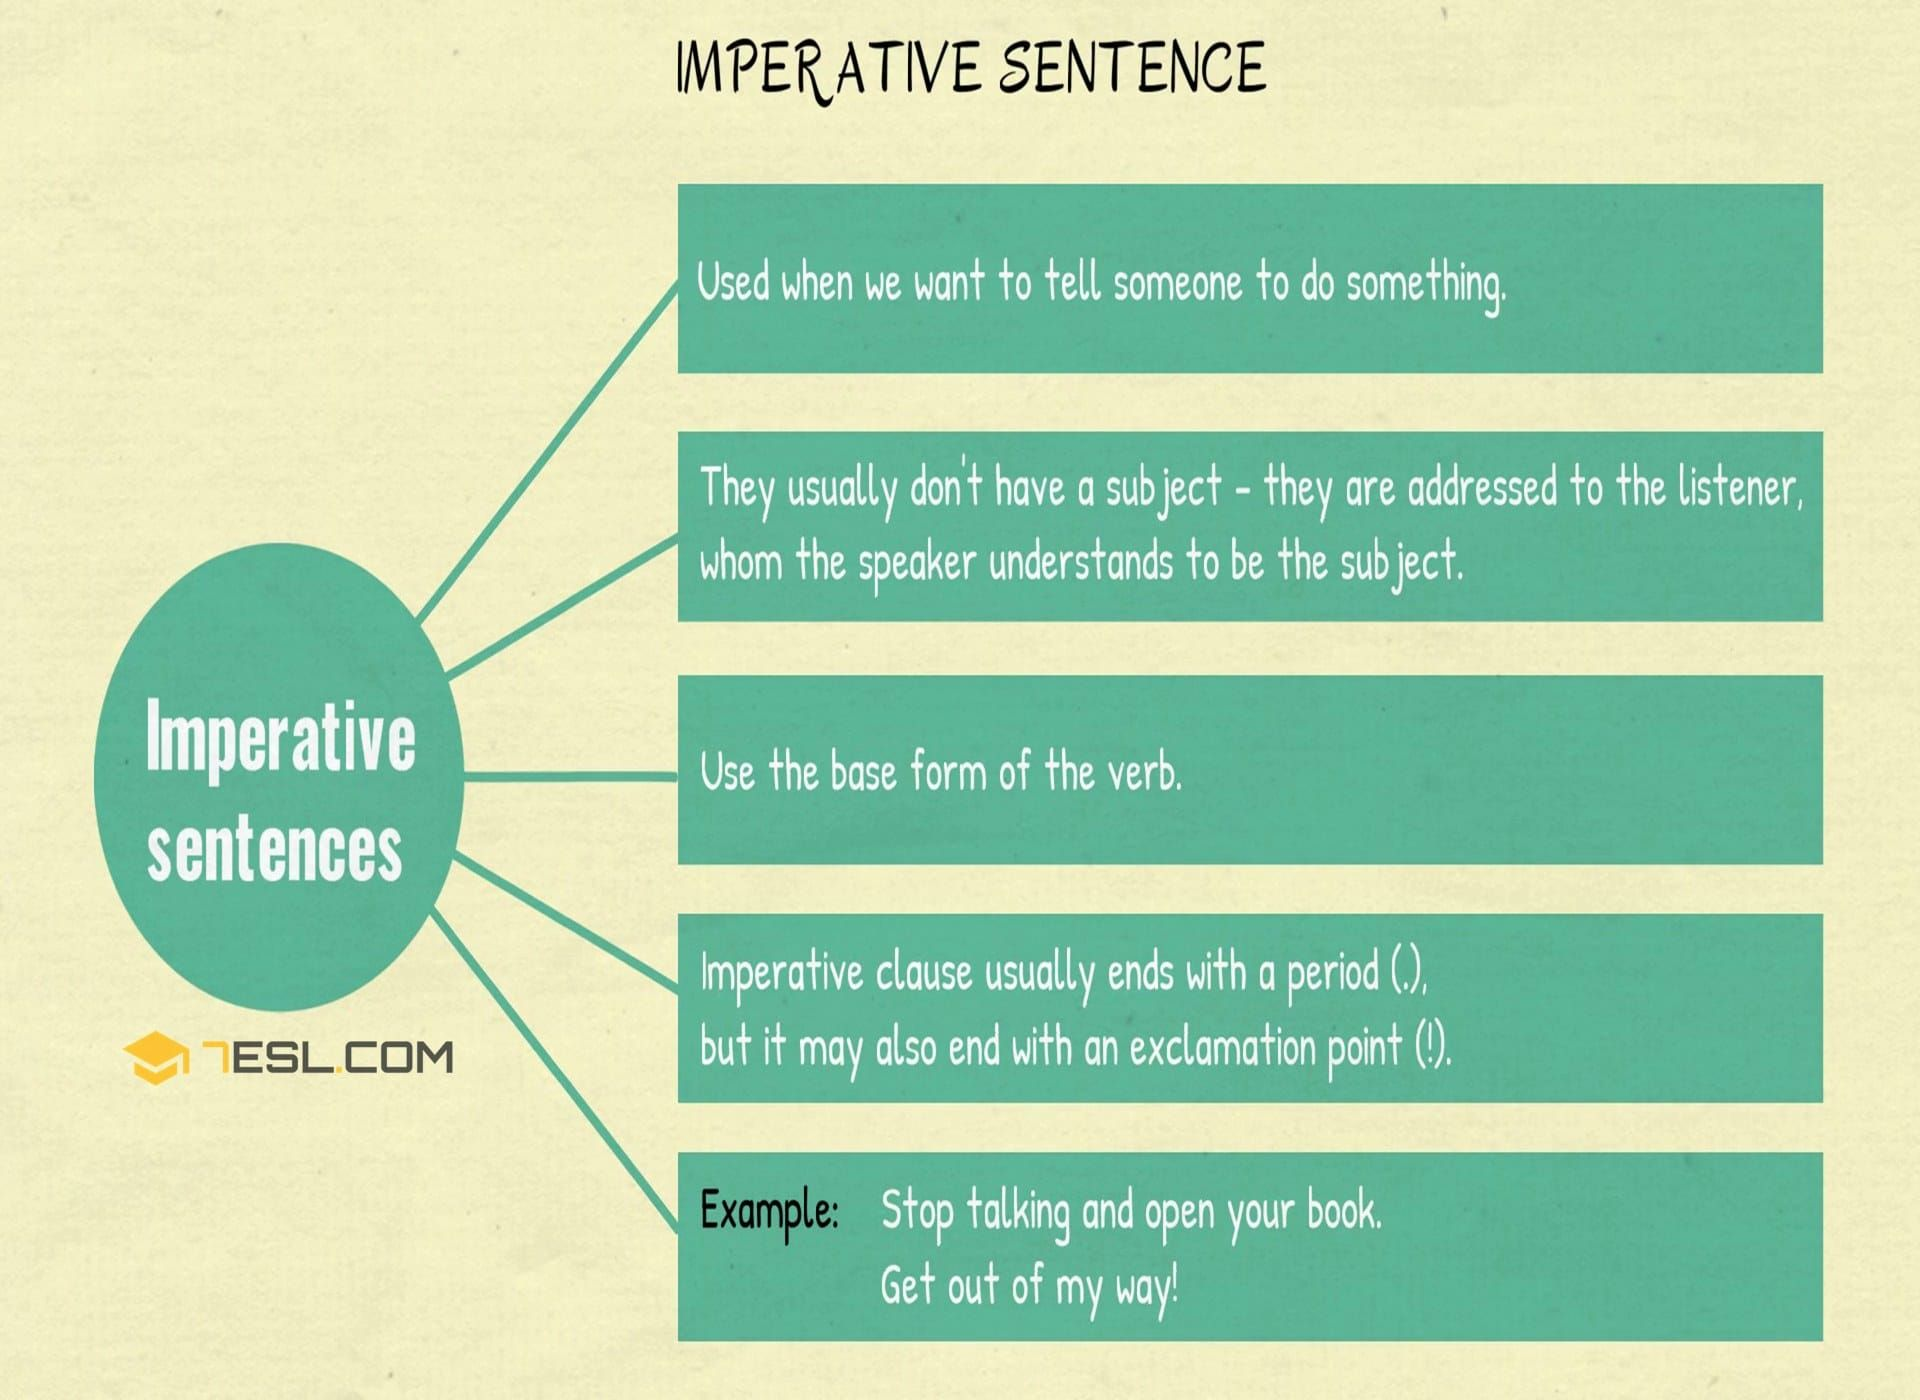 Imperative Sentence Useful Definition And Examples